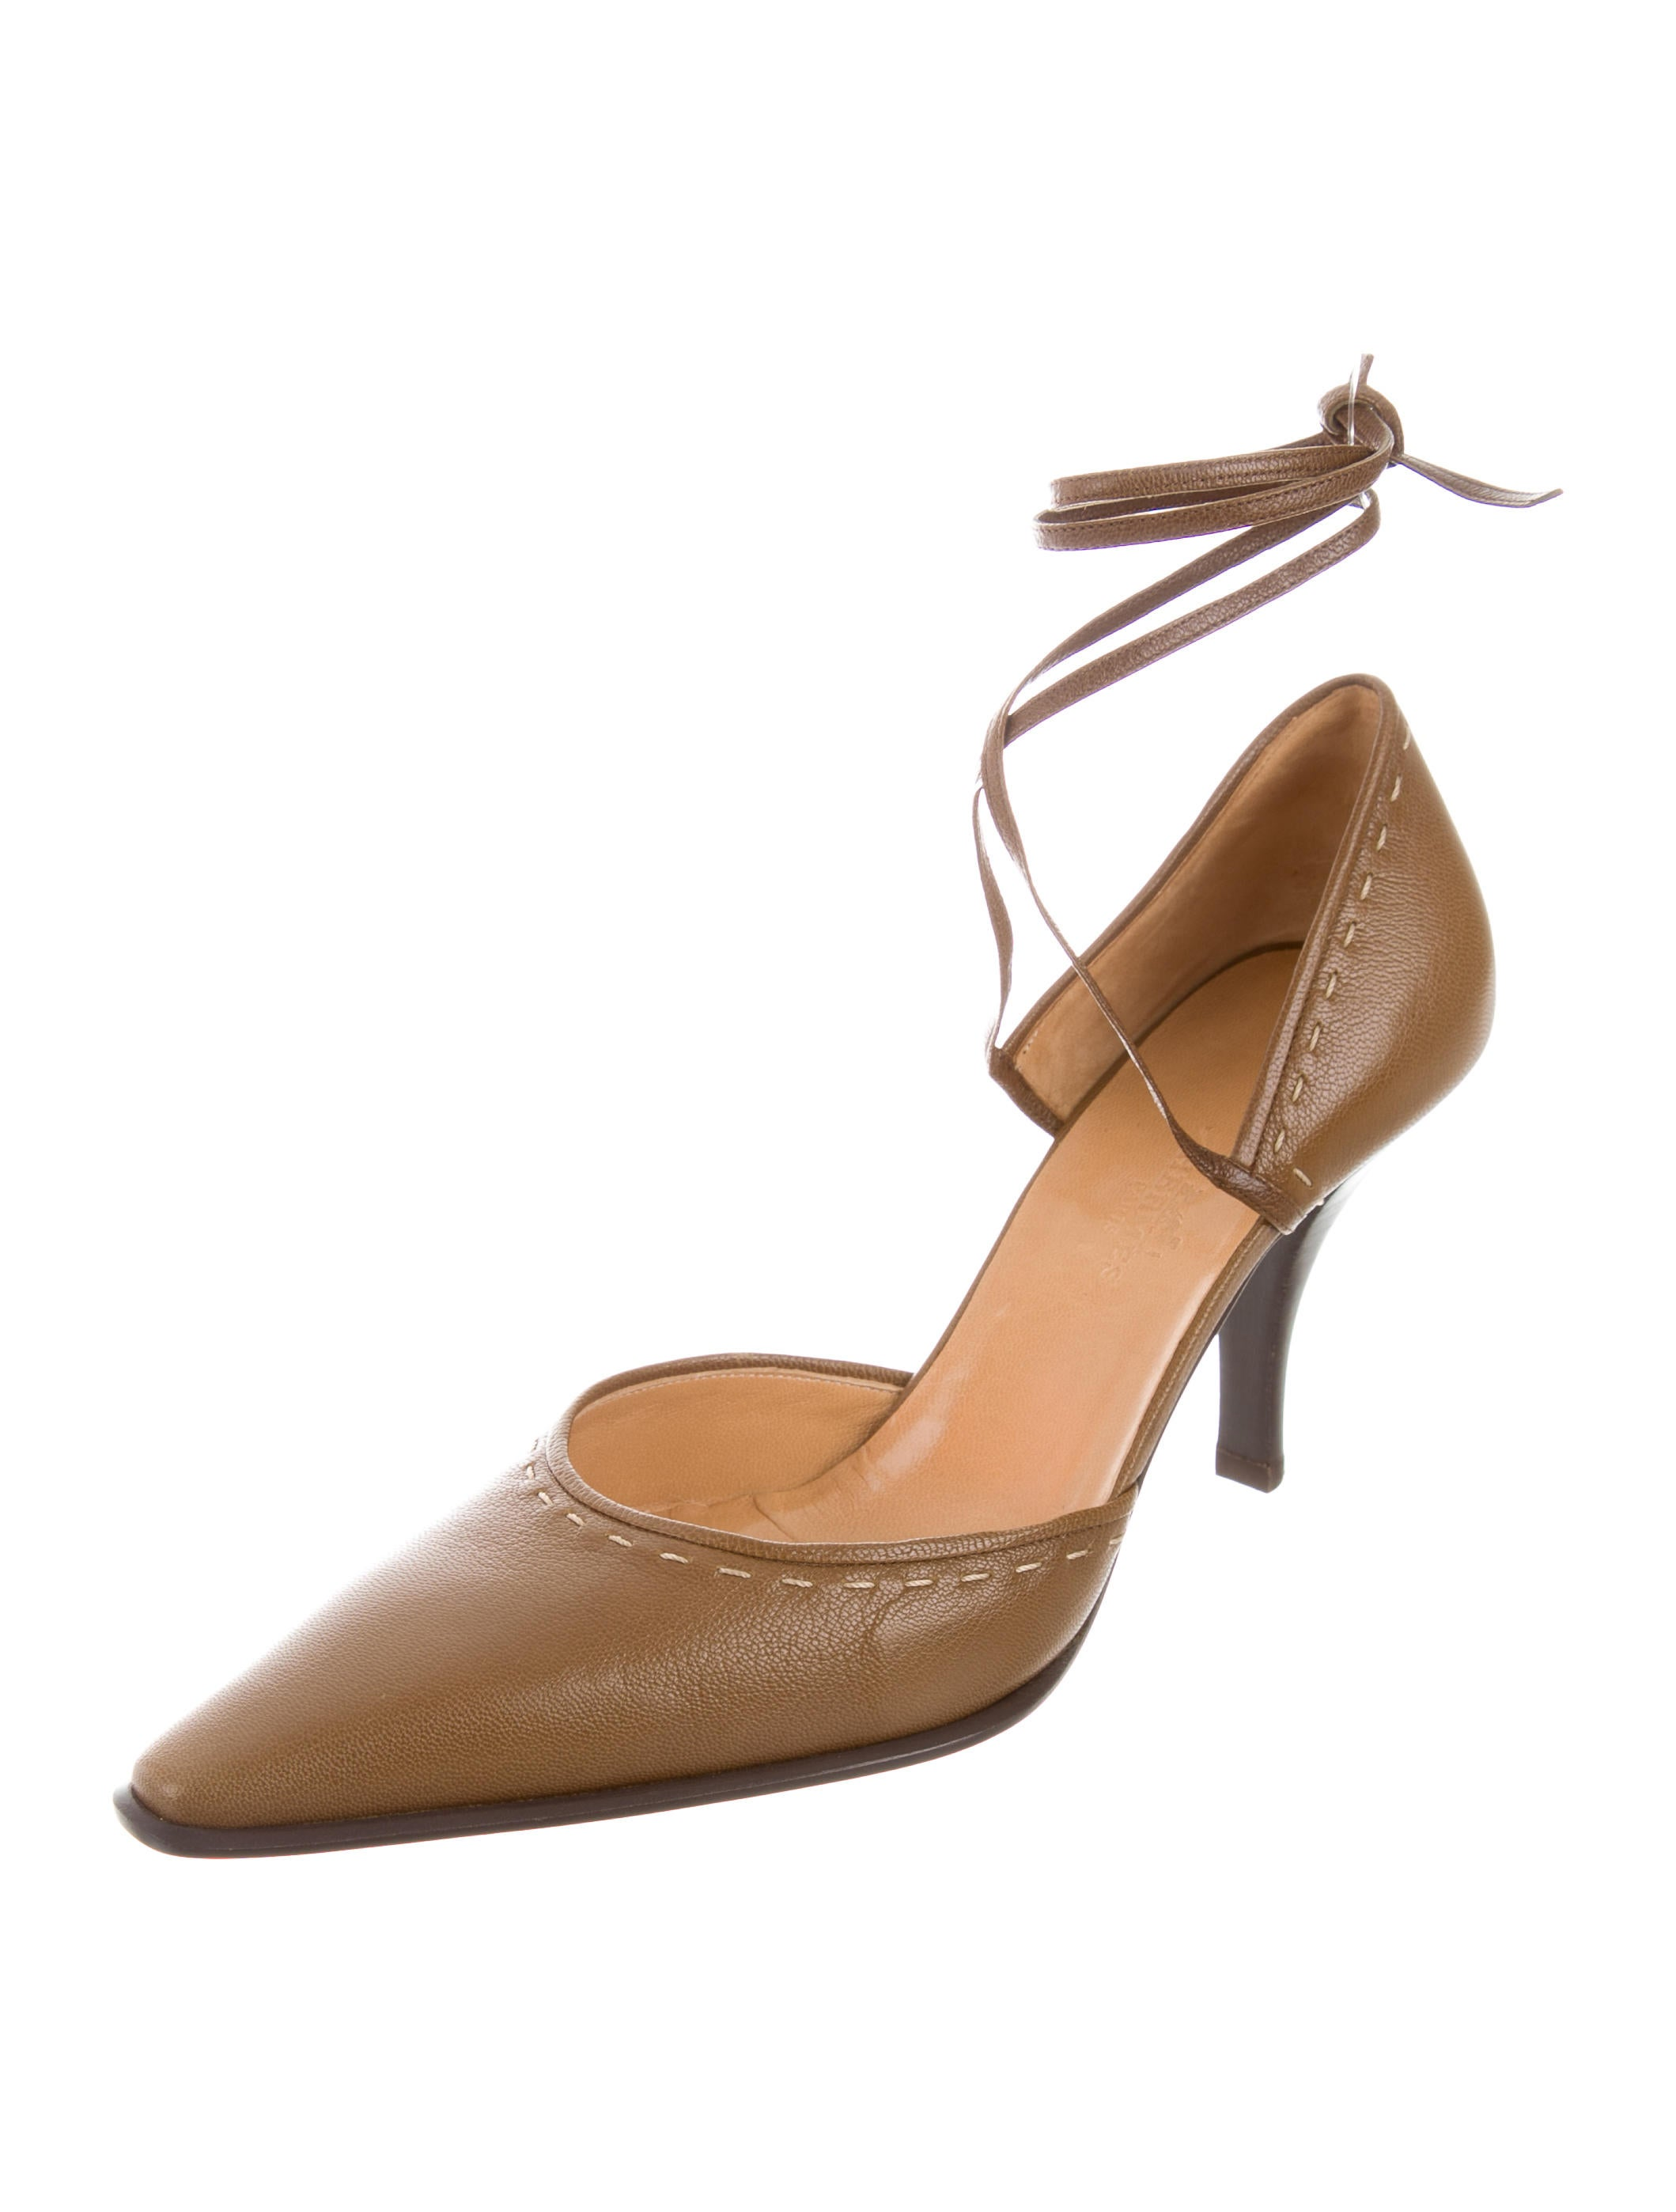 hermes women shoes - photo #29